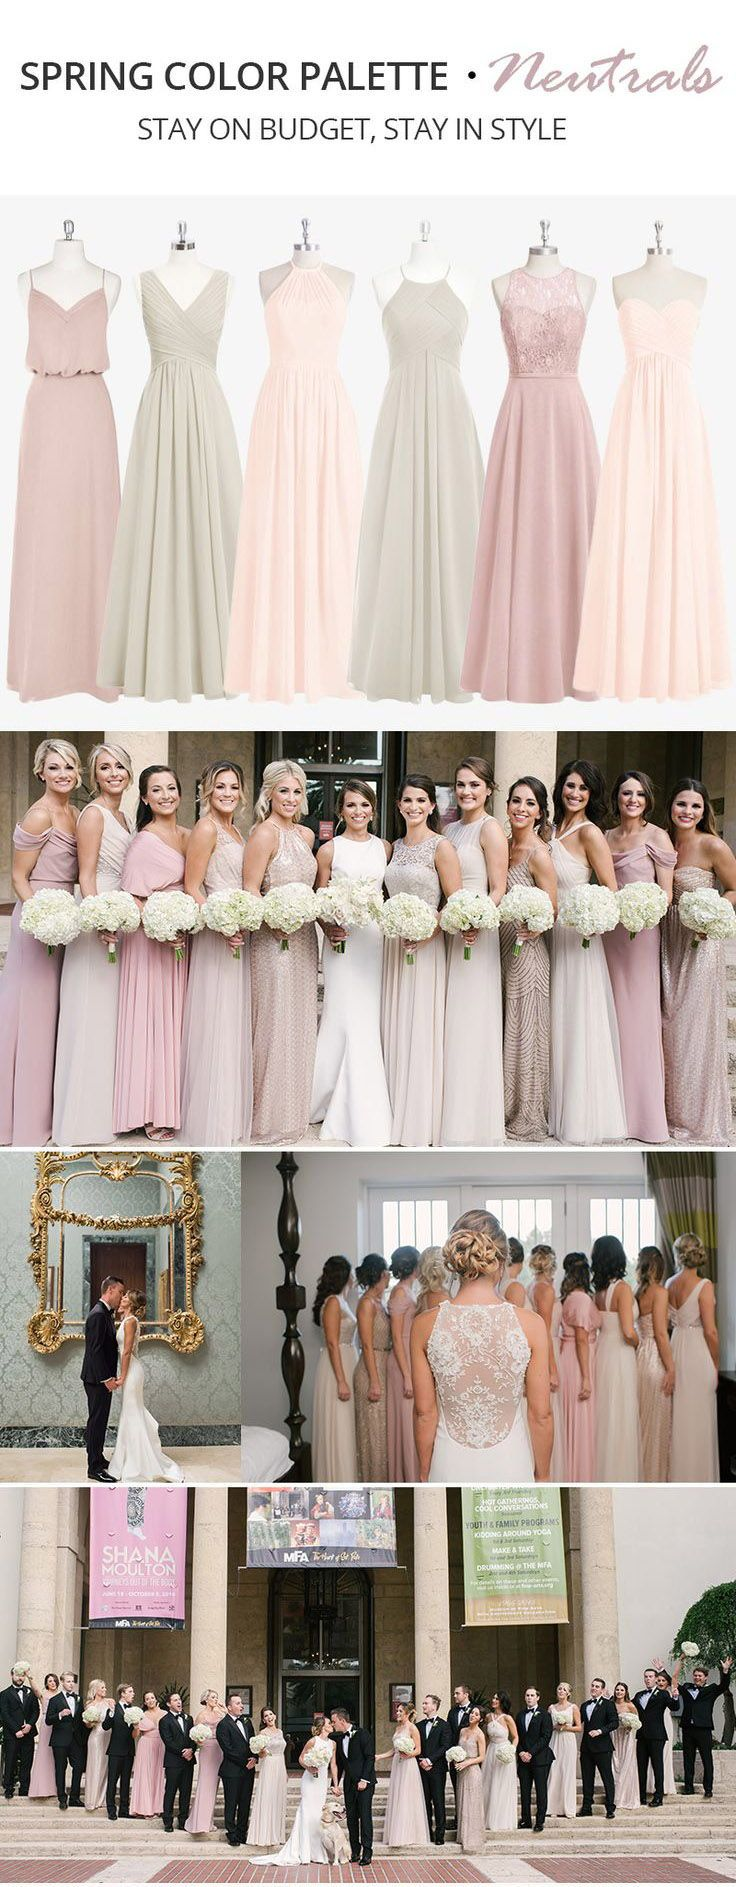 20 Trending Spring Color Palette for Your Bridesmaid Dresses ...